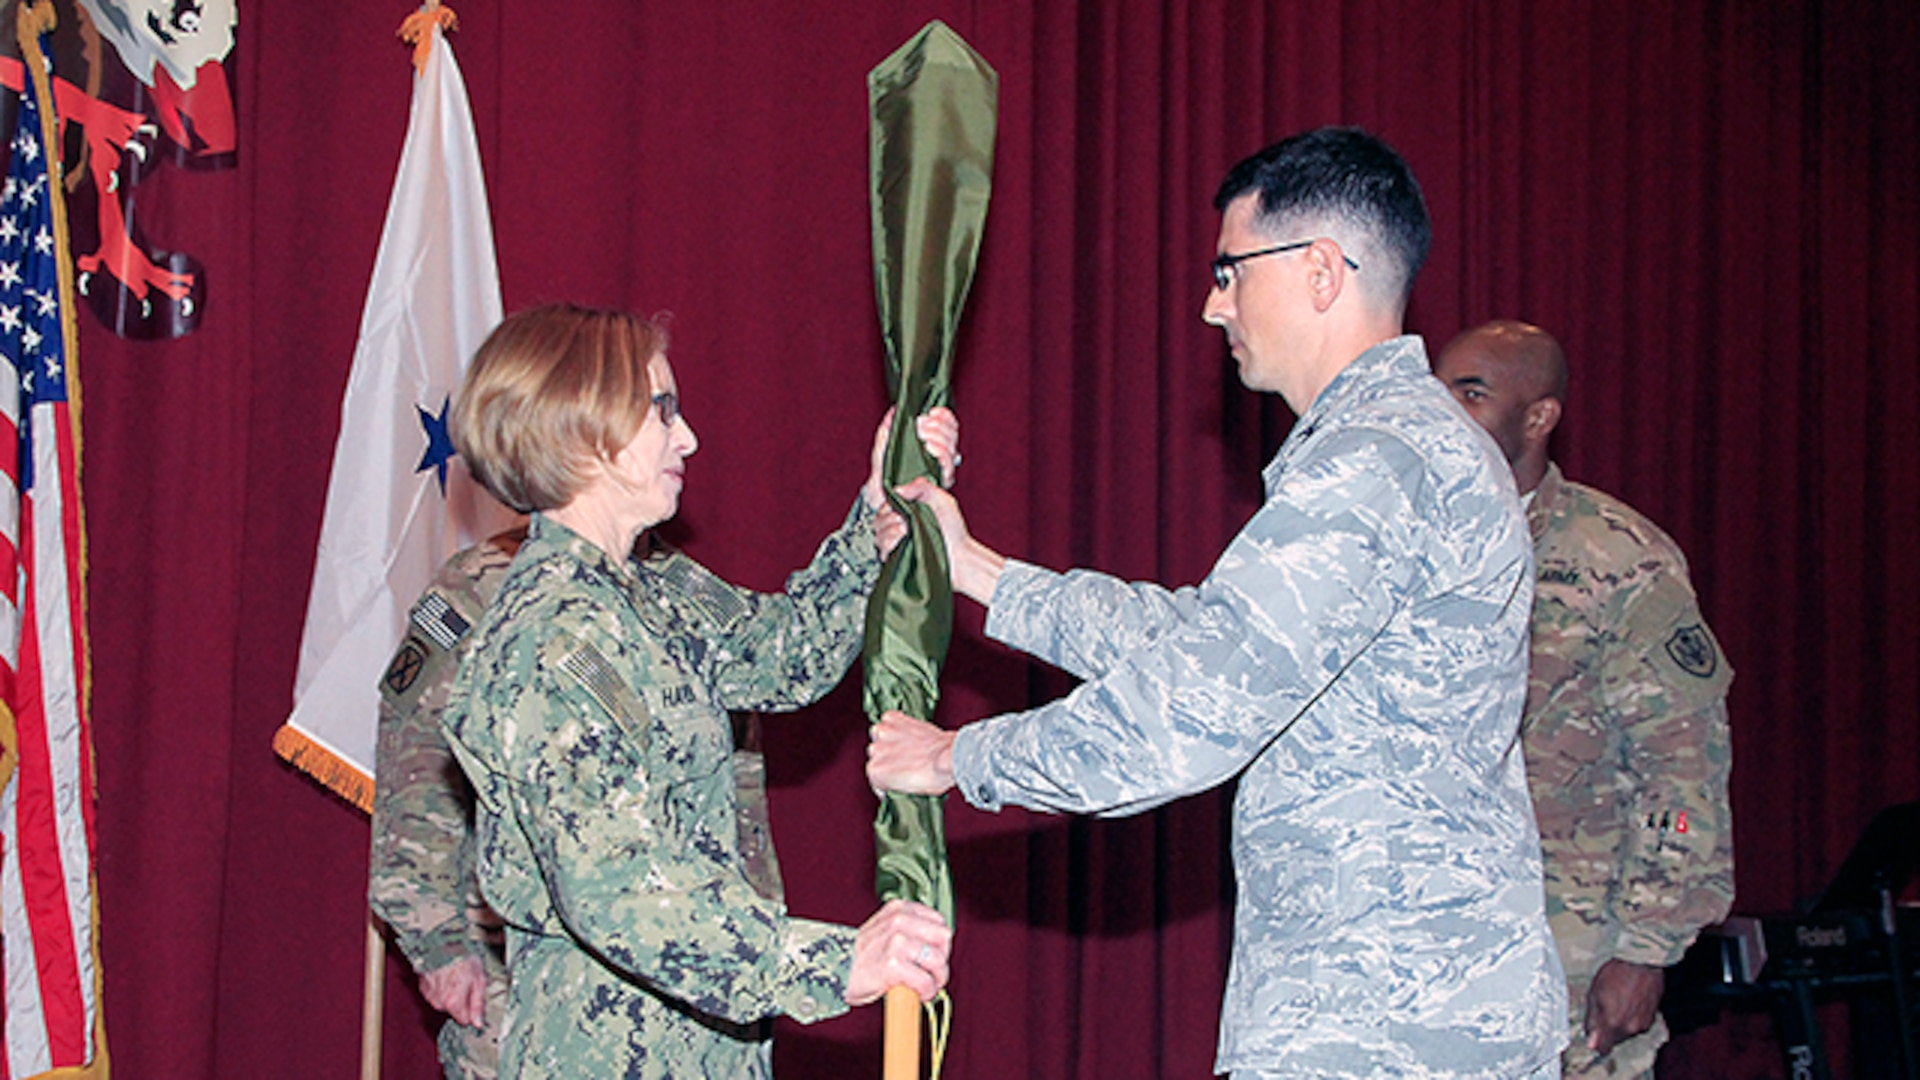 Air Force Col. Christopher Juarez, Defense Contract Management Agency Middle East commander, presents the cased colors of DCMA Afghanistan to Navy Rear Adm. Deborah Haven, DCMA International commander, during a casing ceremony marking the end of DCMA's mission in Afghanistan at Camp Arifjan, Kuwait, Jan. 14.